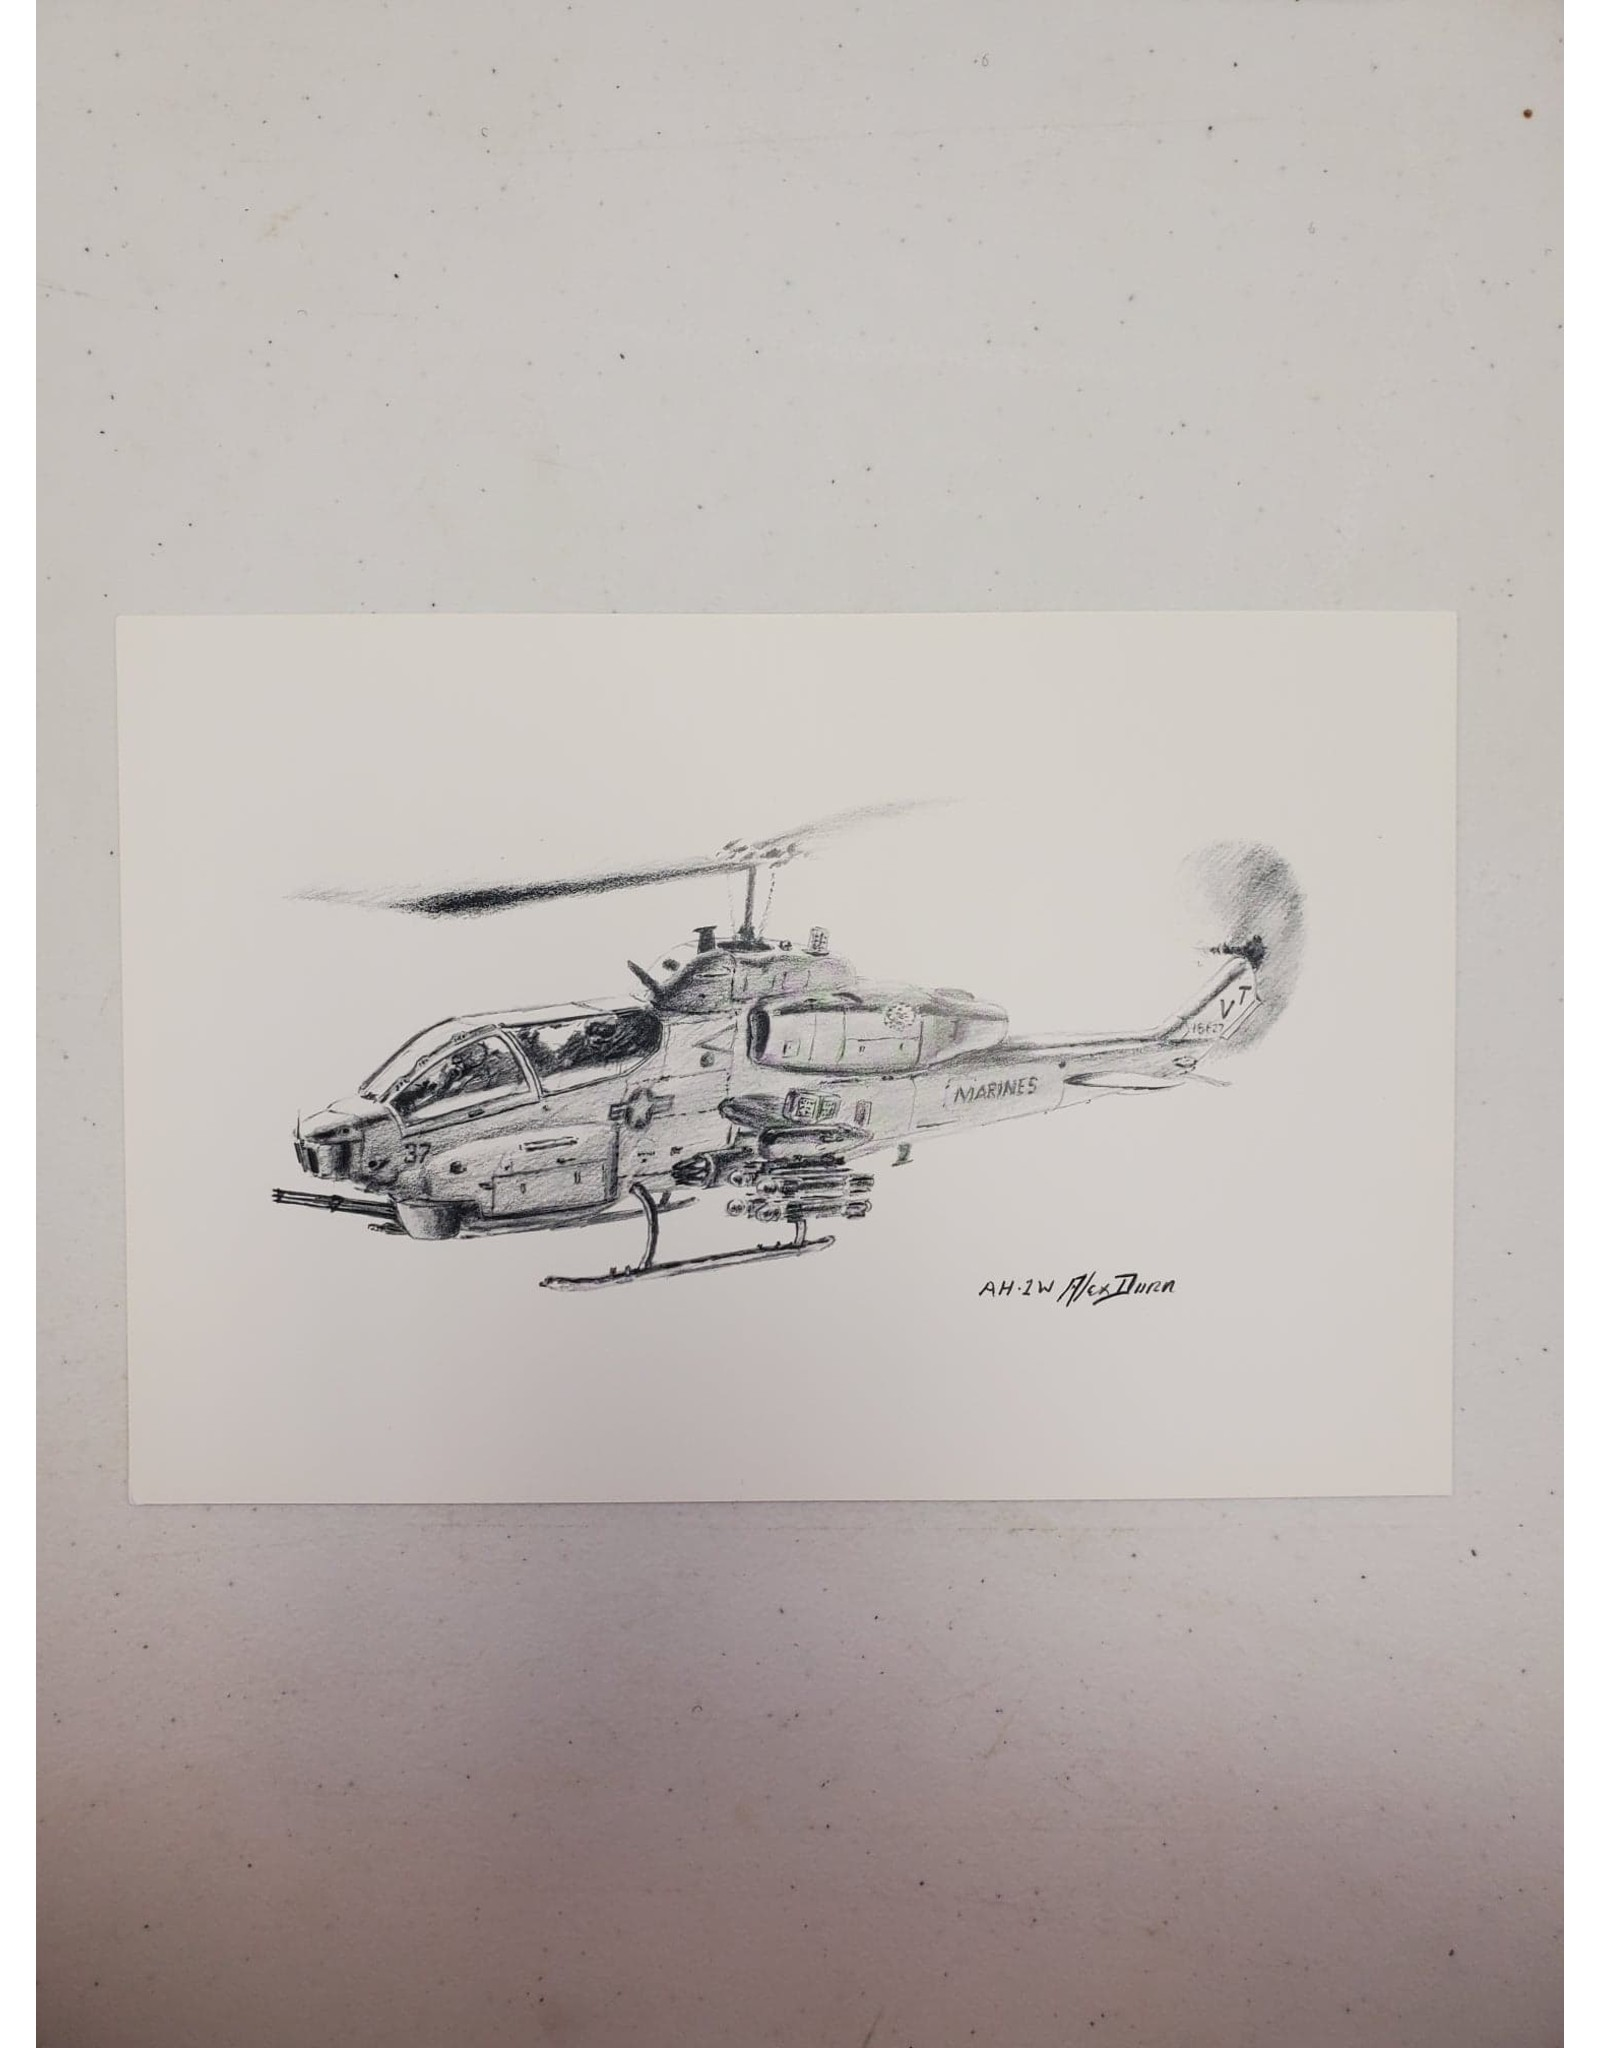 AH-2W Pen and Ink Print